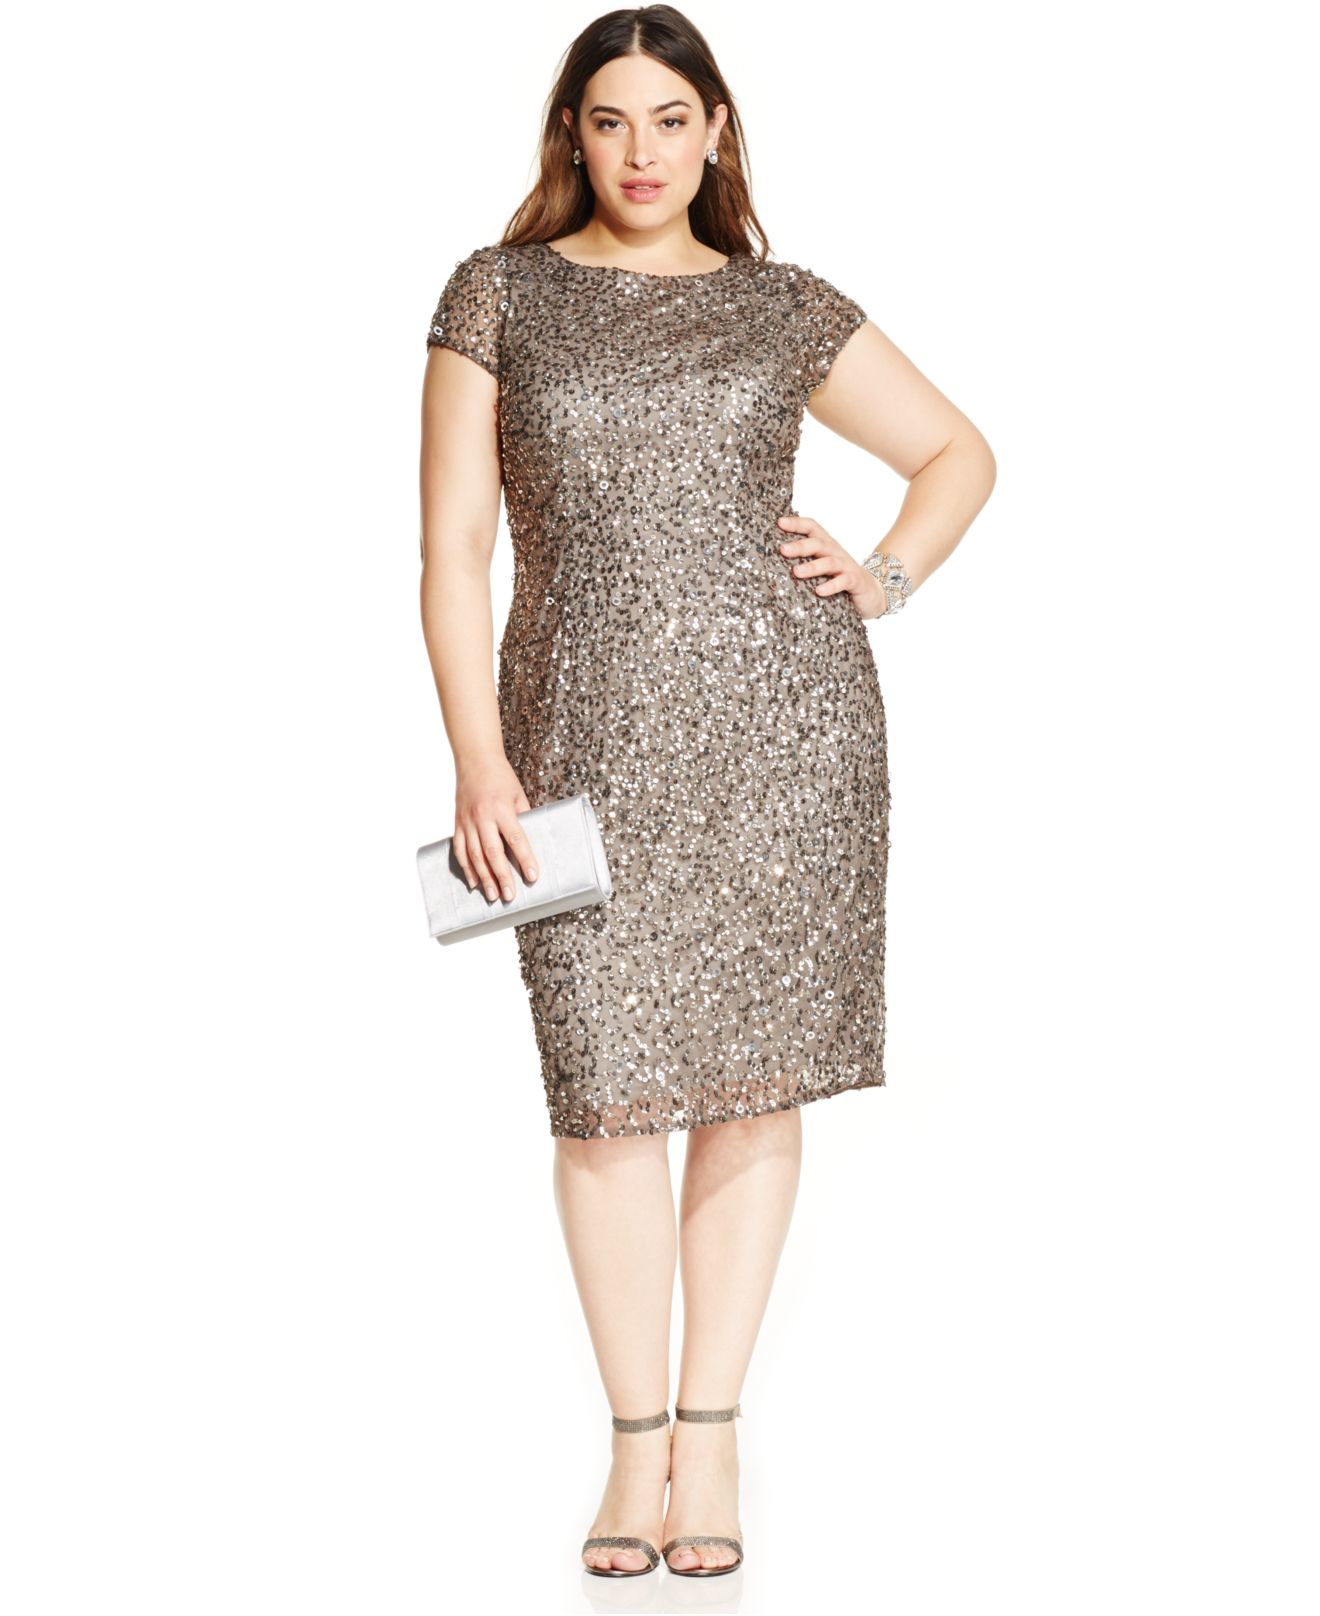 Lyst - Adrianna Papell Plus Size Sequined Scoop-back Dress in Metallic